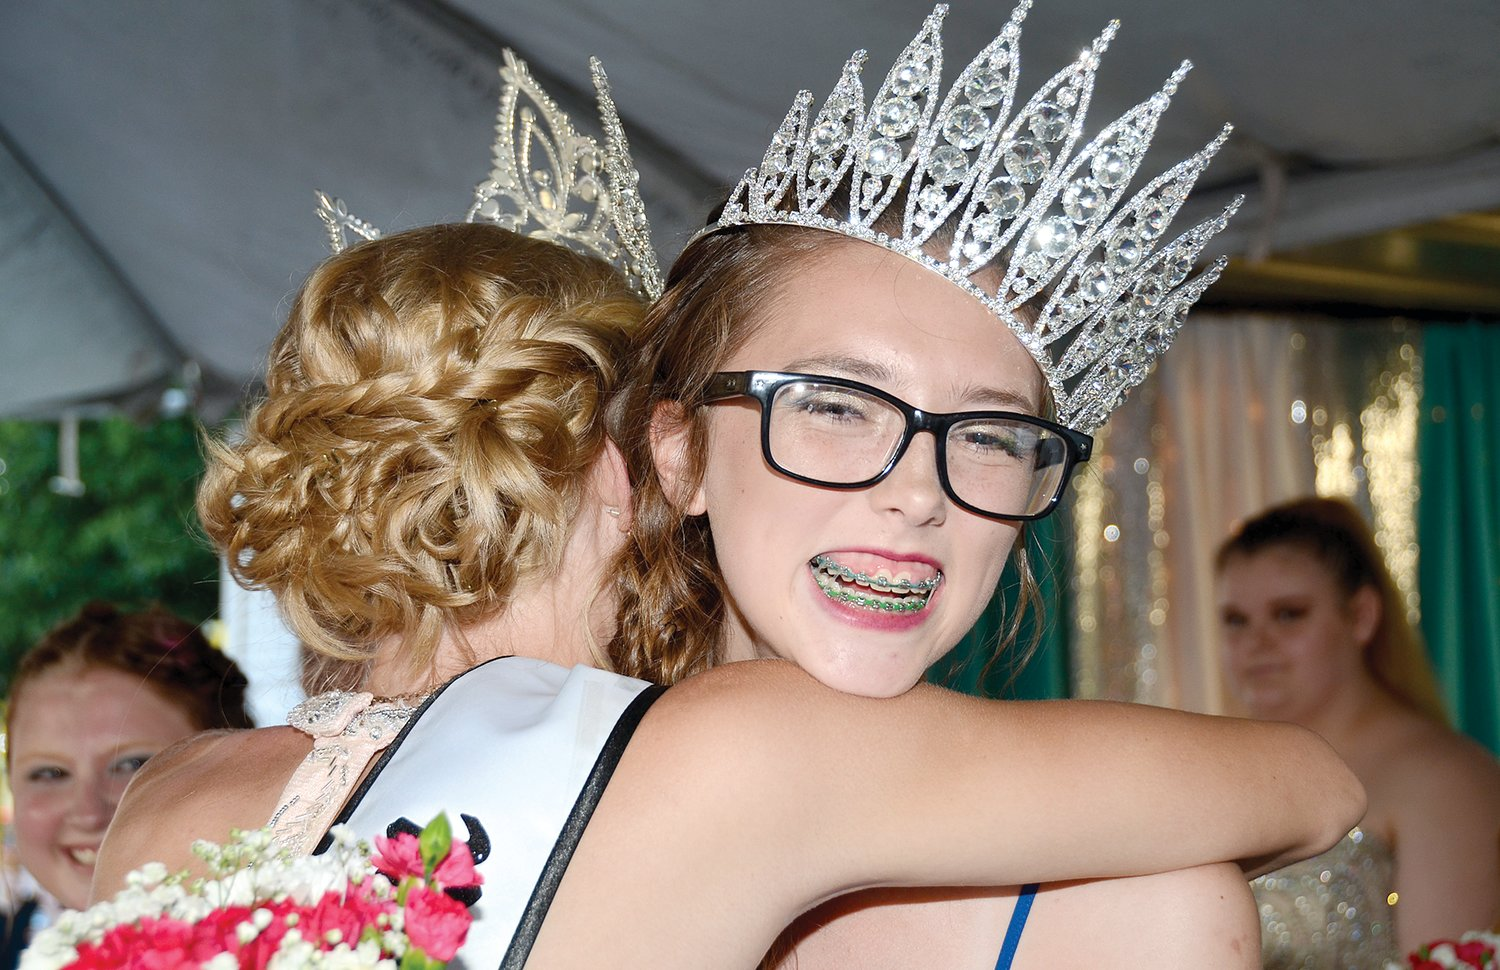 Although a hug from retiring 2018 Old Settlers Queen Kelly Jansen set her crown just a bit askew, Caitlyn Howard was all smiles to be crowned the new 2019 Old Settlers Queen in downtown Hillsboro on Wednesday evening. Howard is the first in her family to win that honor, as her mom, Stefanie (Floyd) Howard was the second runner-up in 1996 and her sister, Maddie Howard was the first runner-up in 2015.